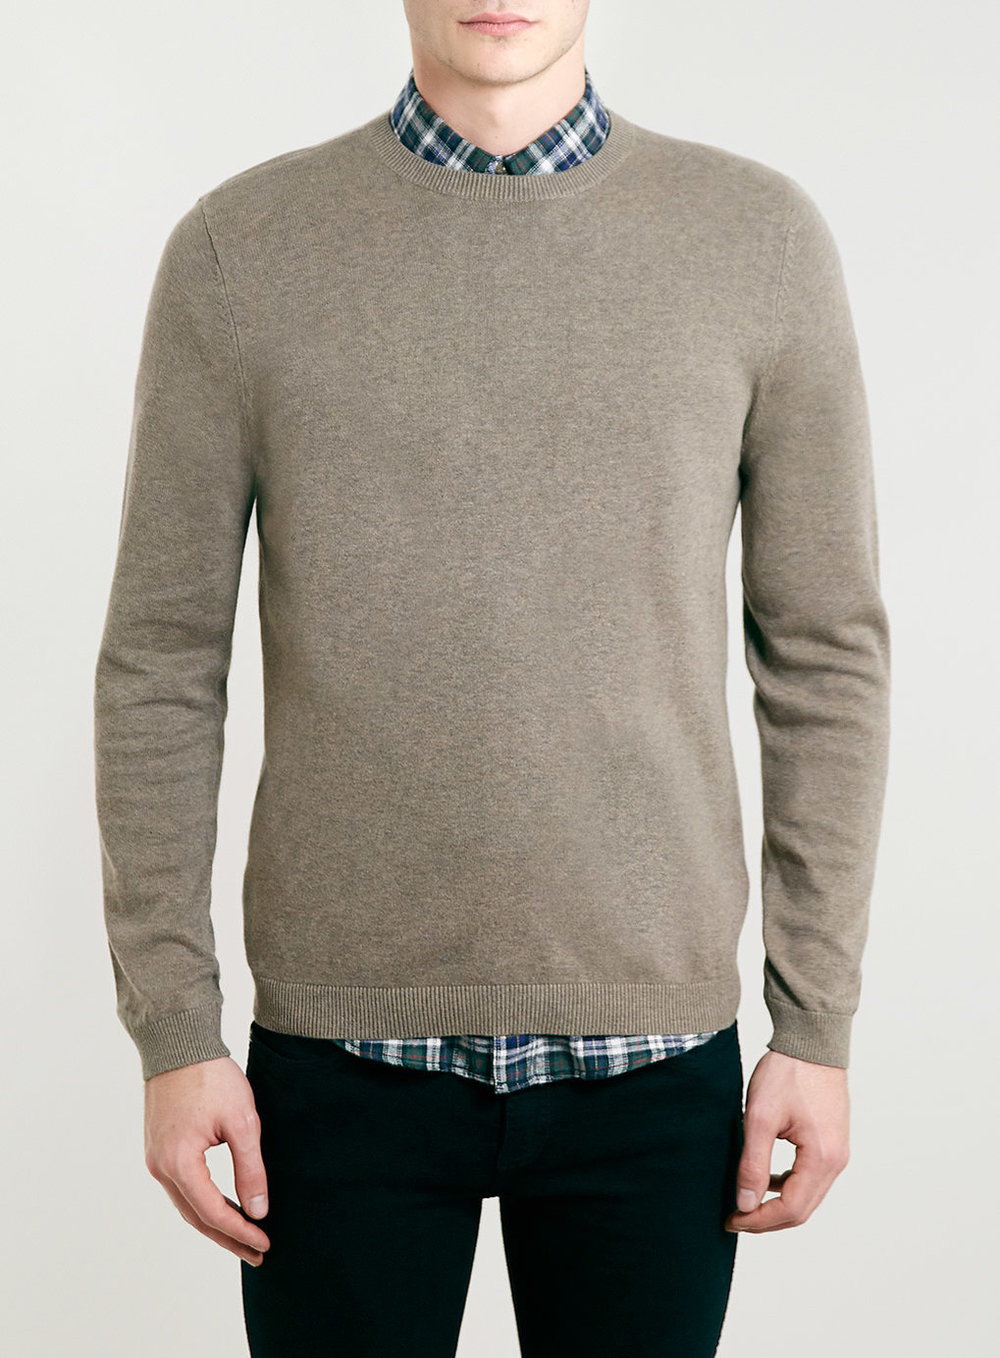 Sand Marl Classic Crew Neck Sweater, was $30, now $24